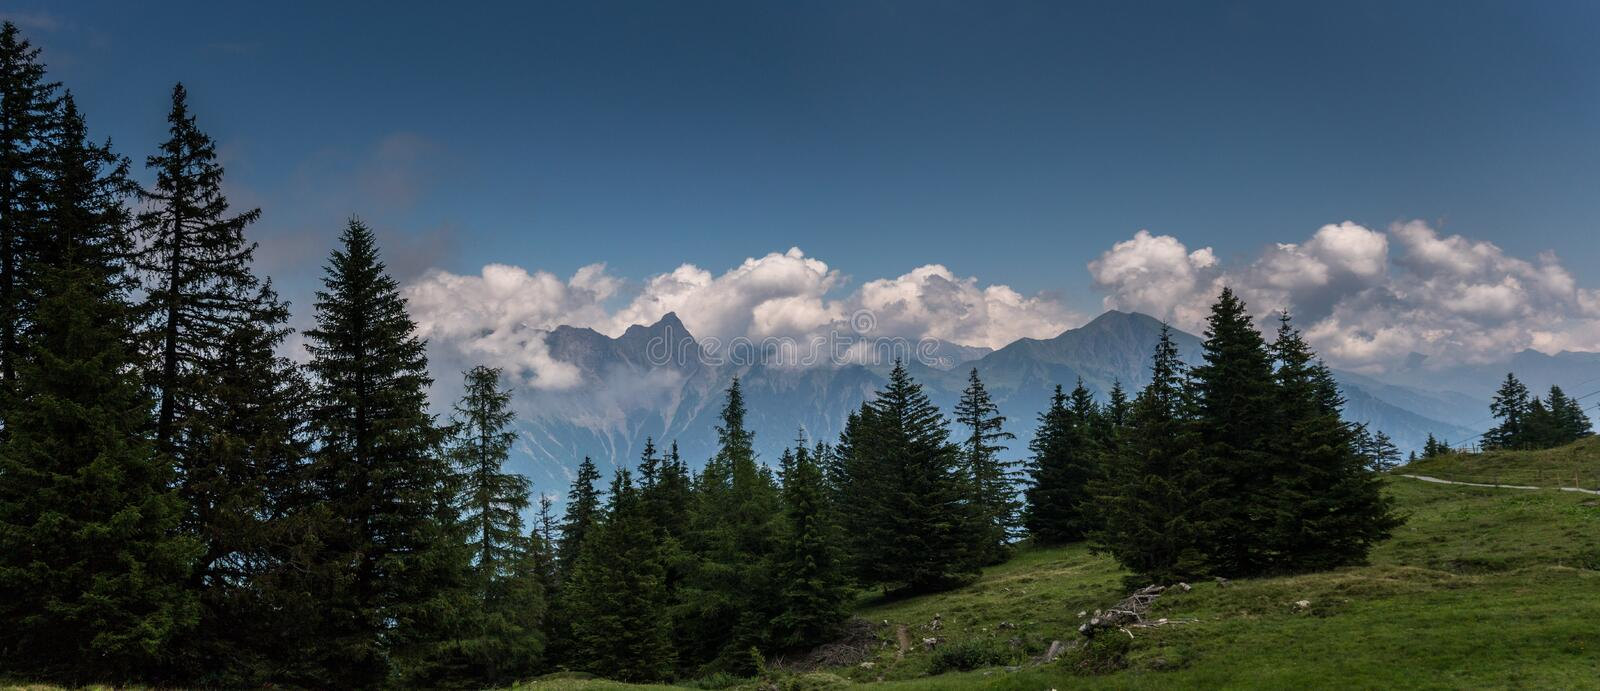 Gorgeous Swiss Alps mountain landscape in summer with forest in the foreground stock images